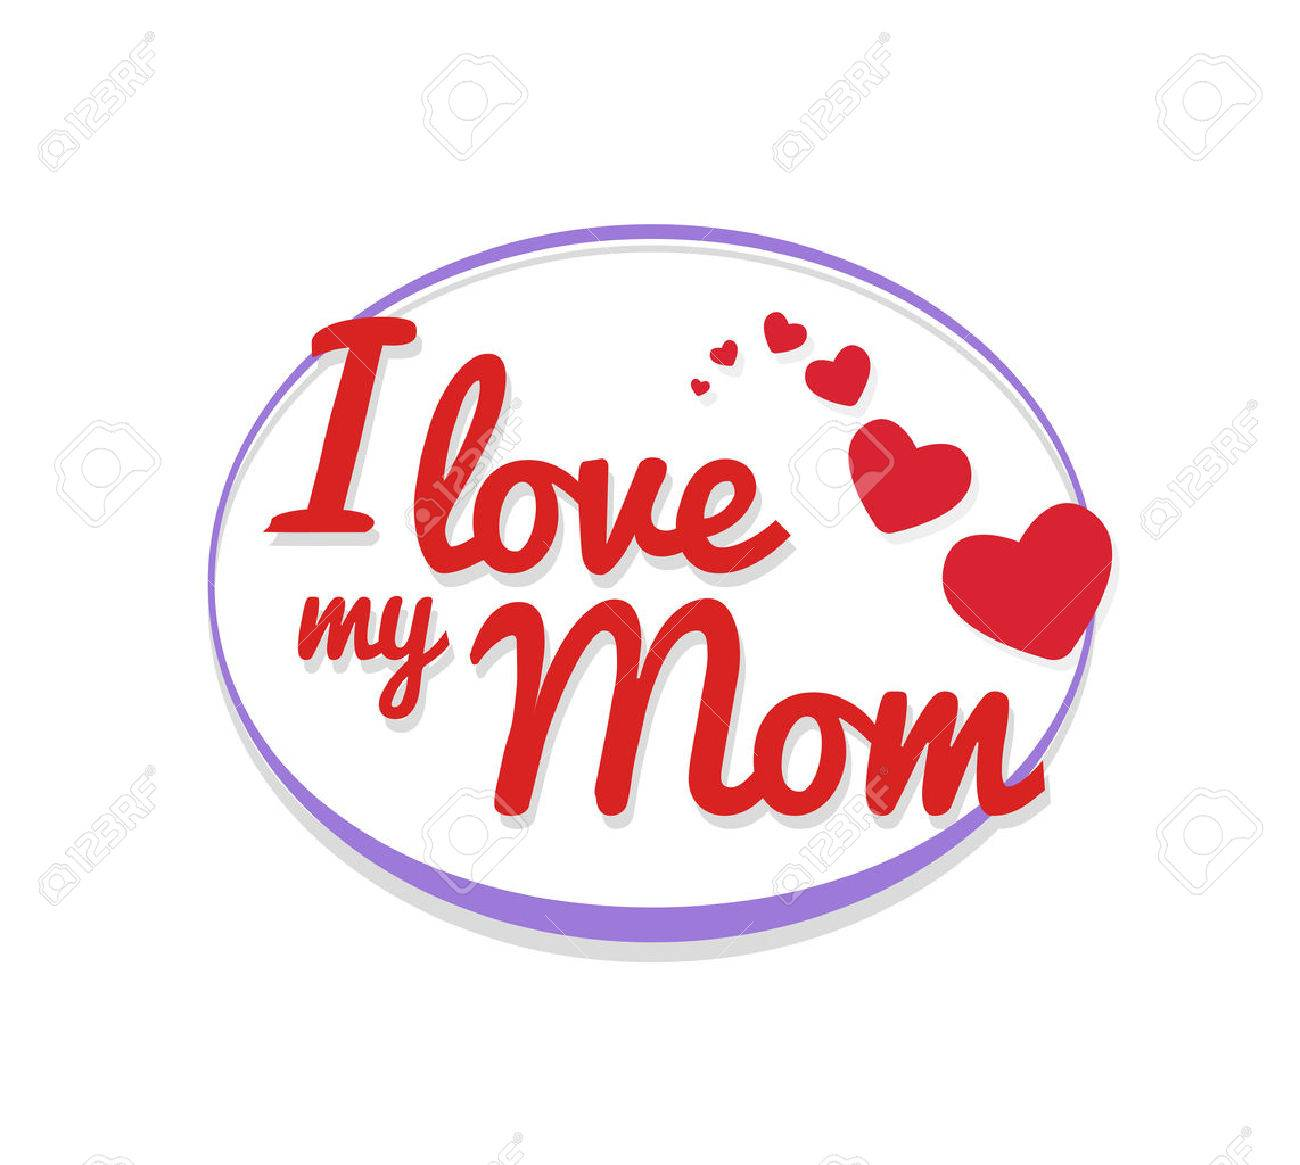 I love mom clipart 3 » Clipart Station.